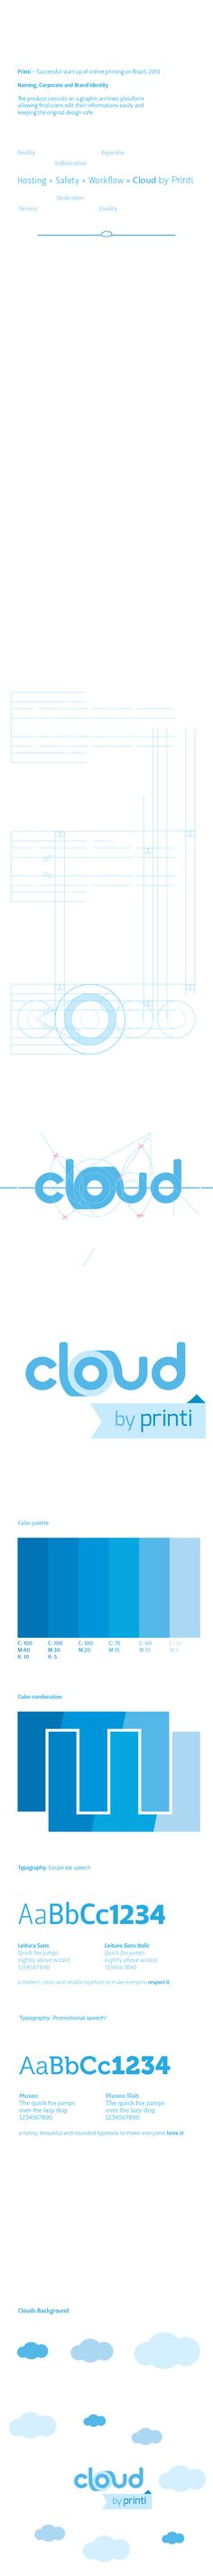 Cloud by Printi- Corporate, Brand Identity and Naming by Allan Rodrigo, via Behance